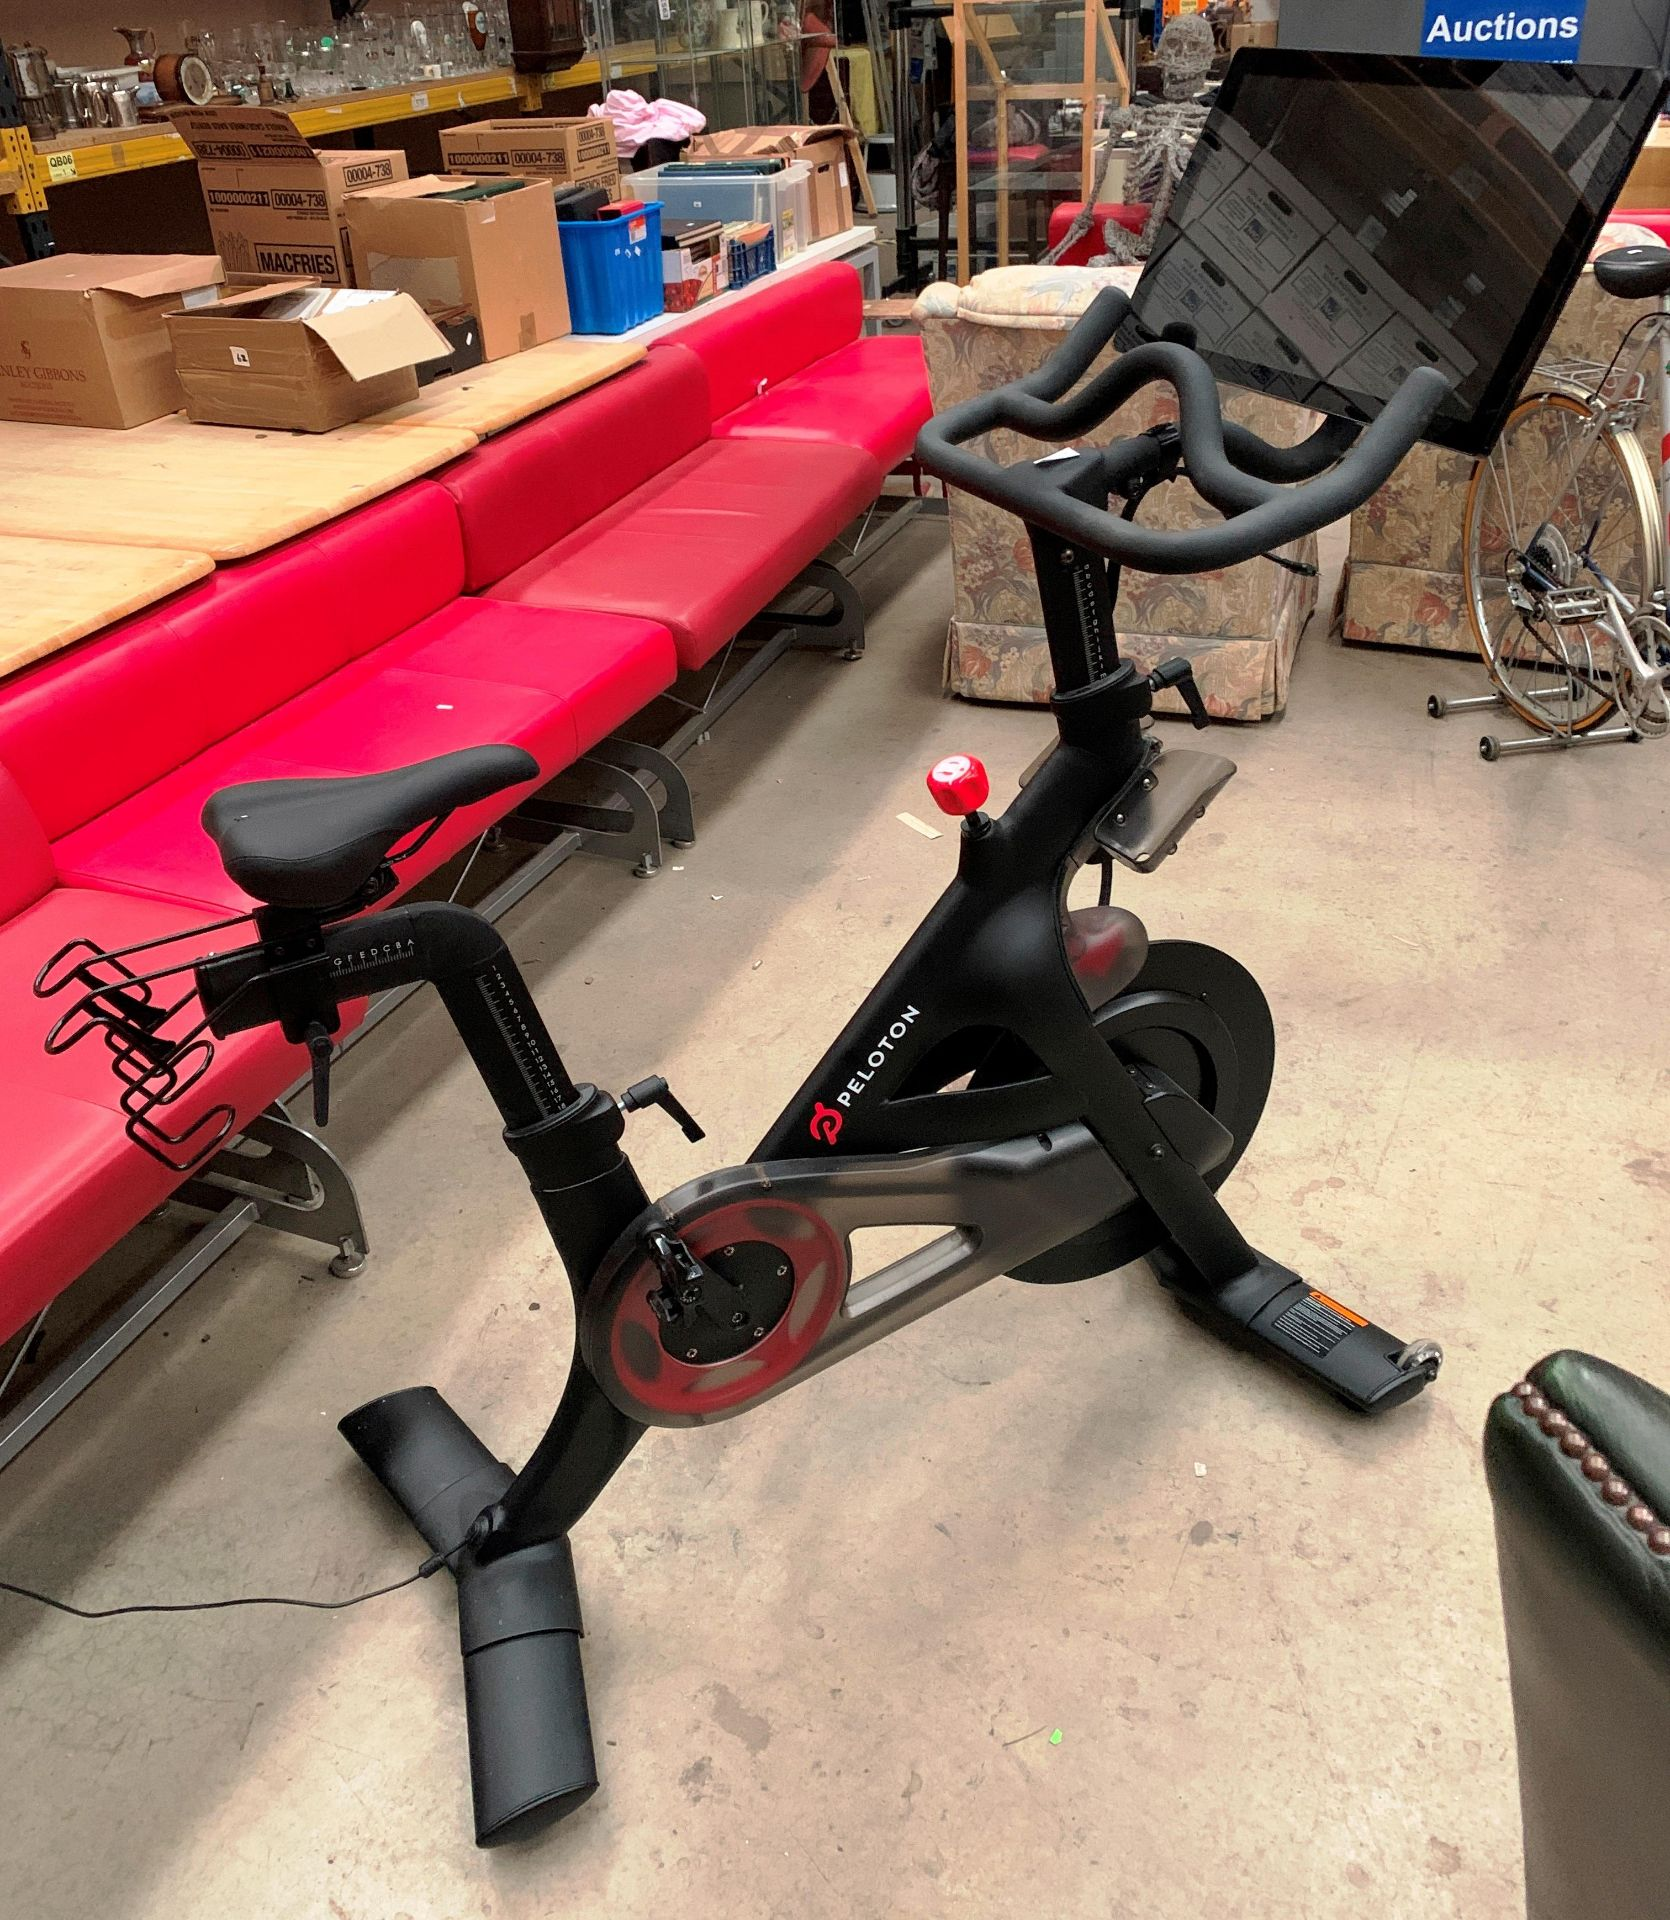 A PELOTON TRAINING BIKE with Peloton console model PLTN-RB1VQ complete with power lead and lock - - Image 5 of 12